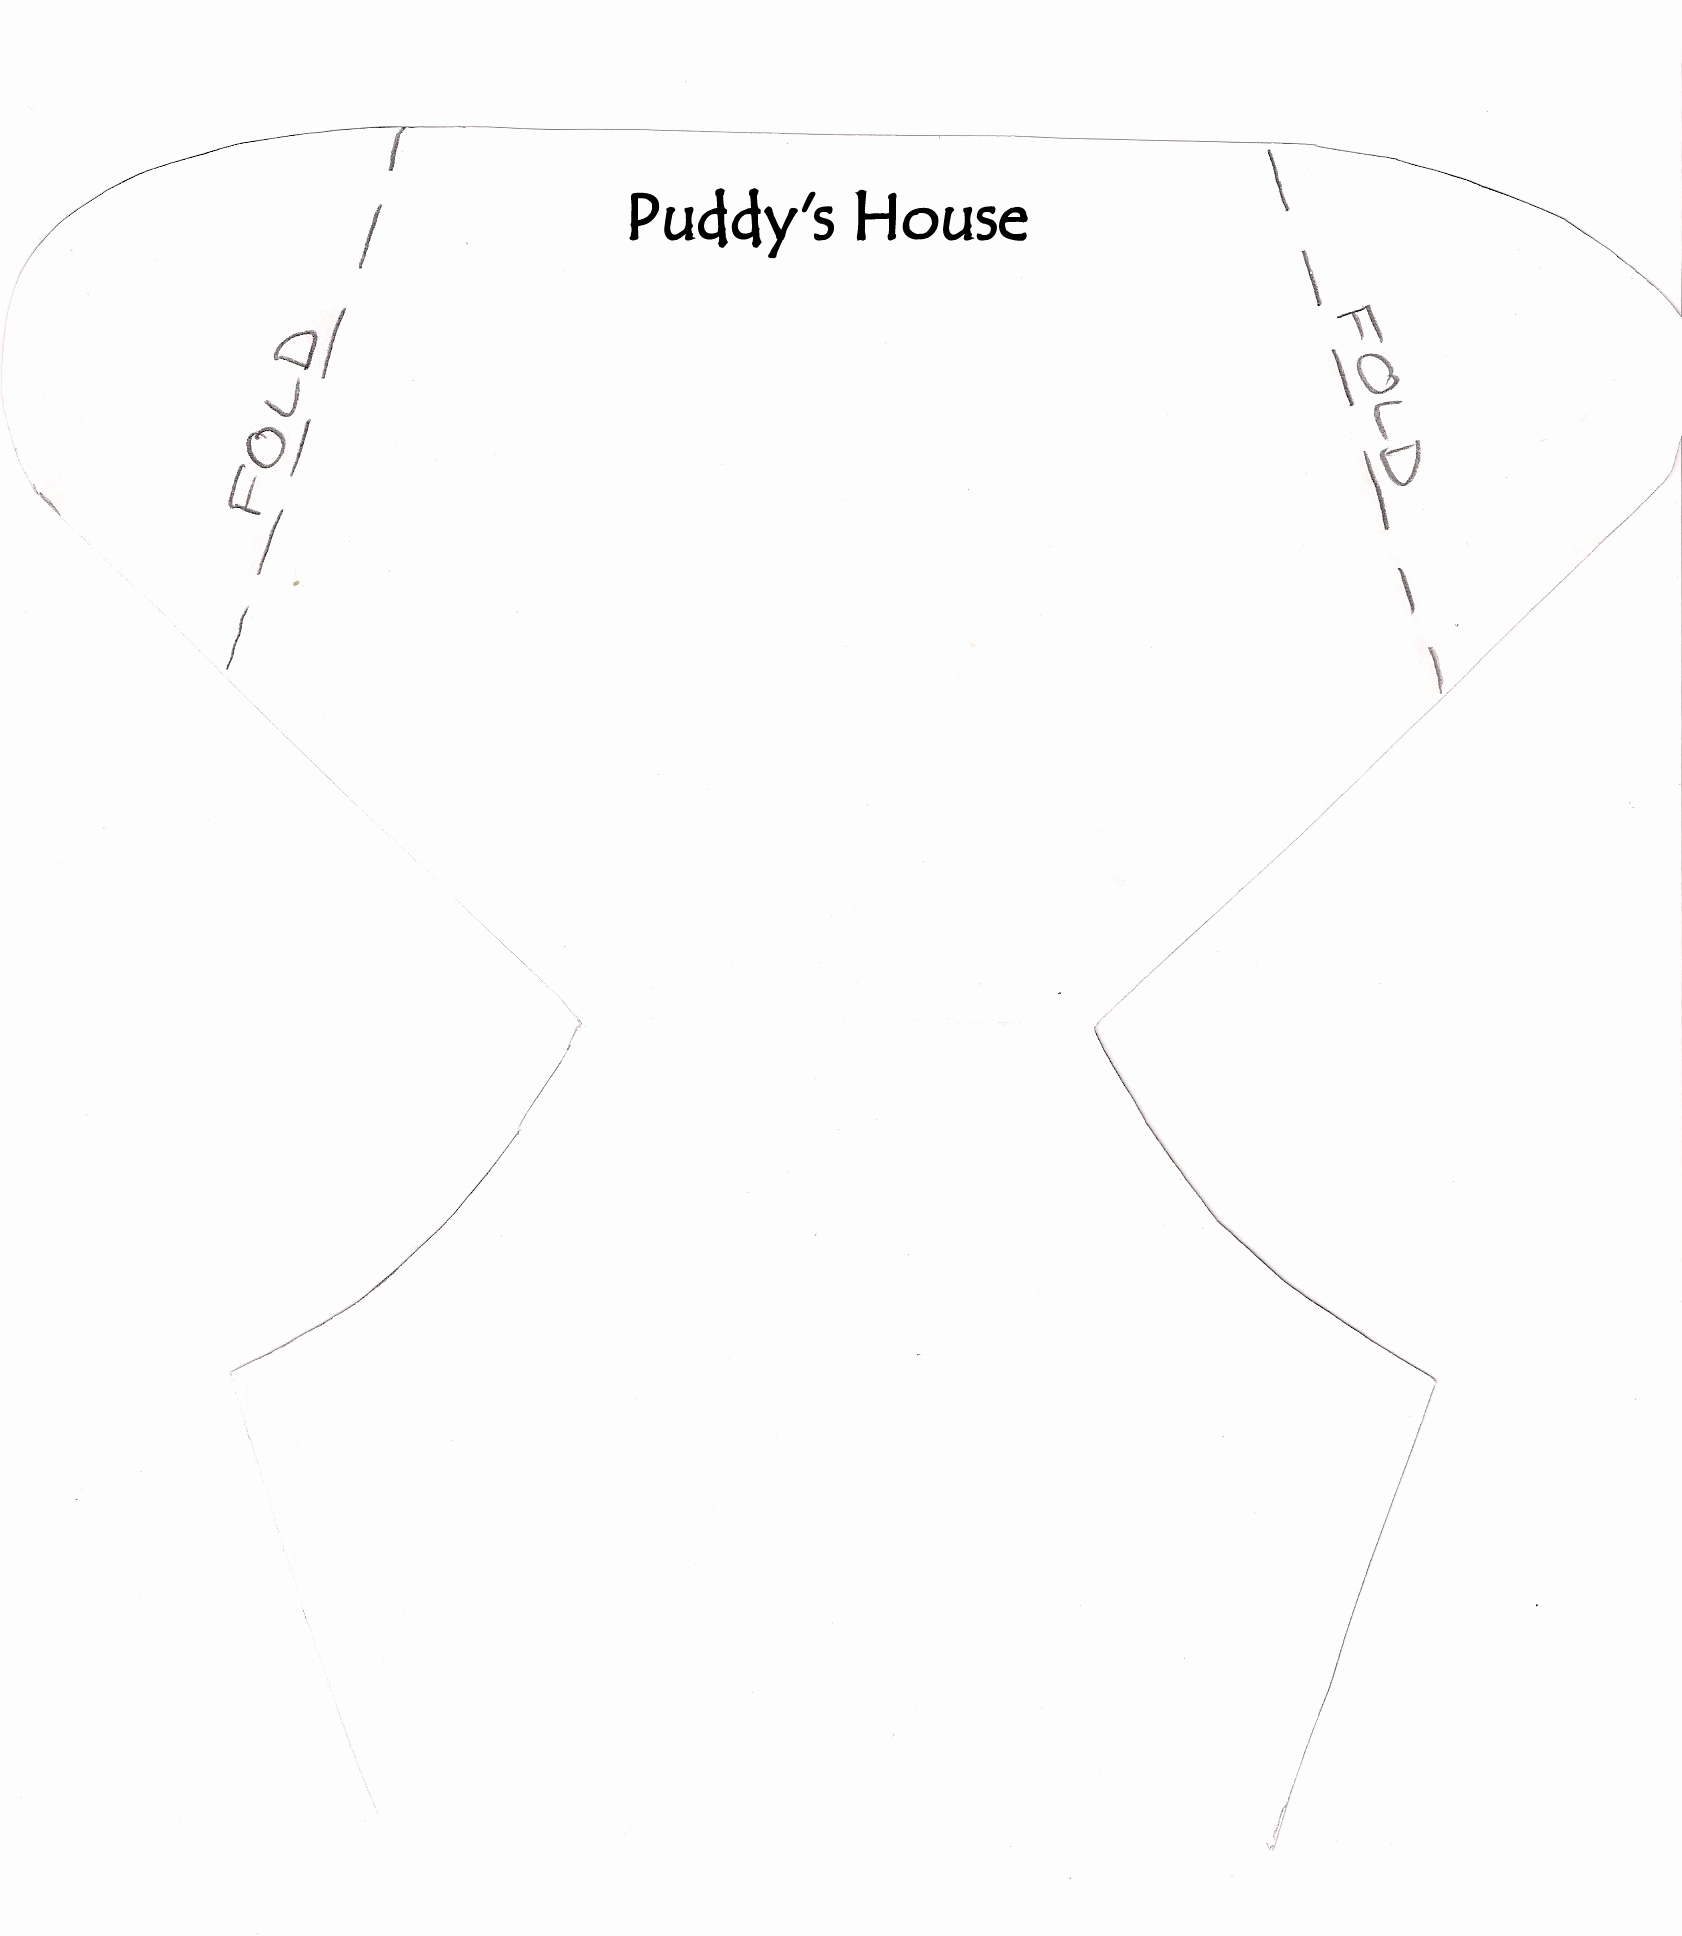 Template for Diaper Invitation Unique Diy Diaper Invitation – Puddy S House